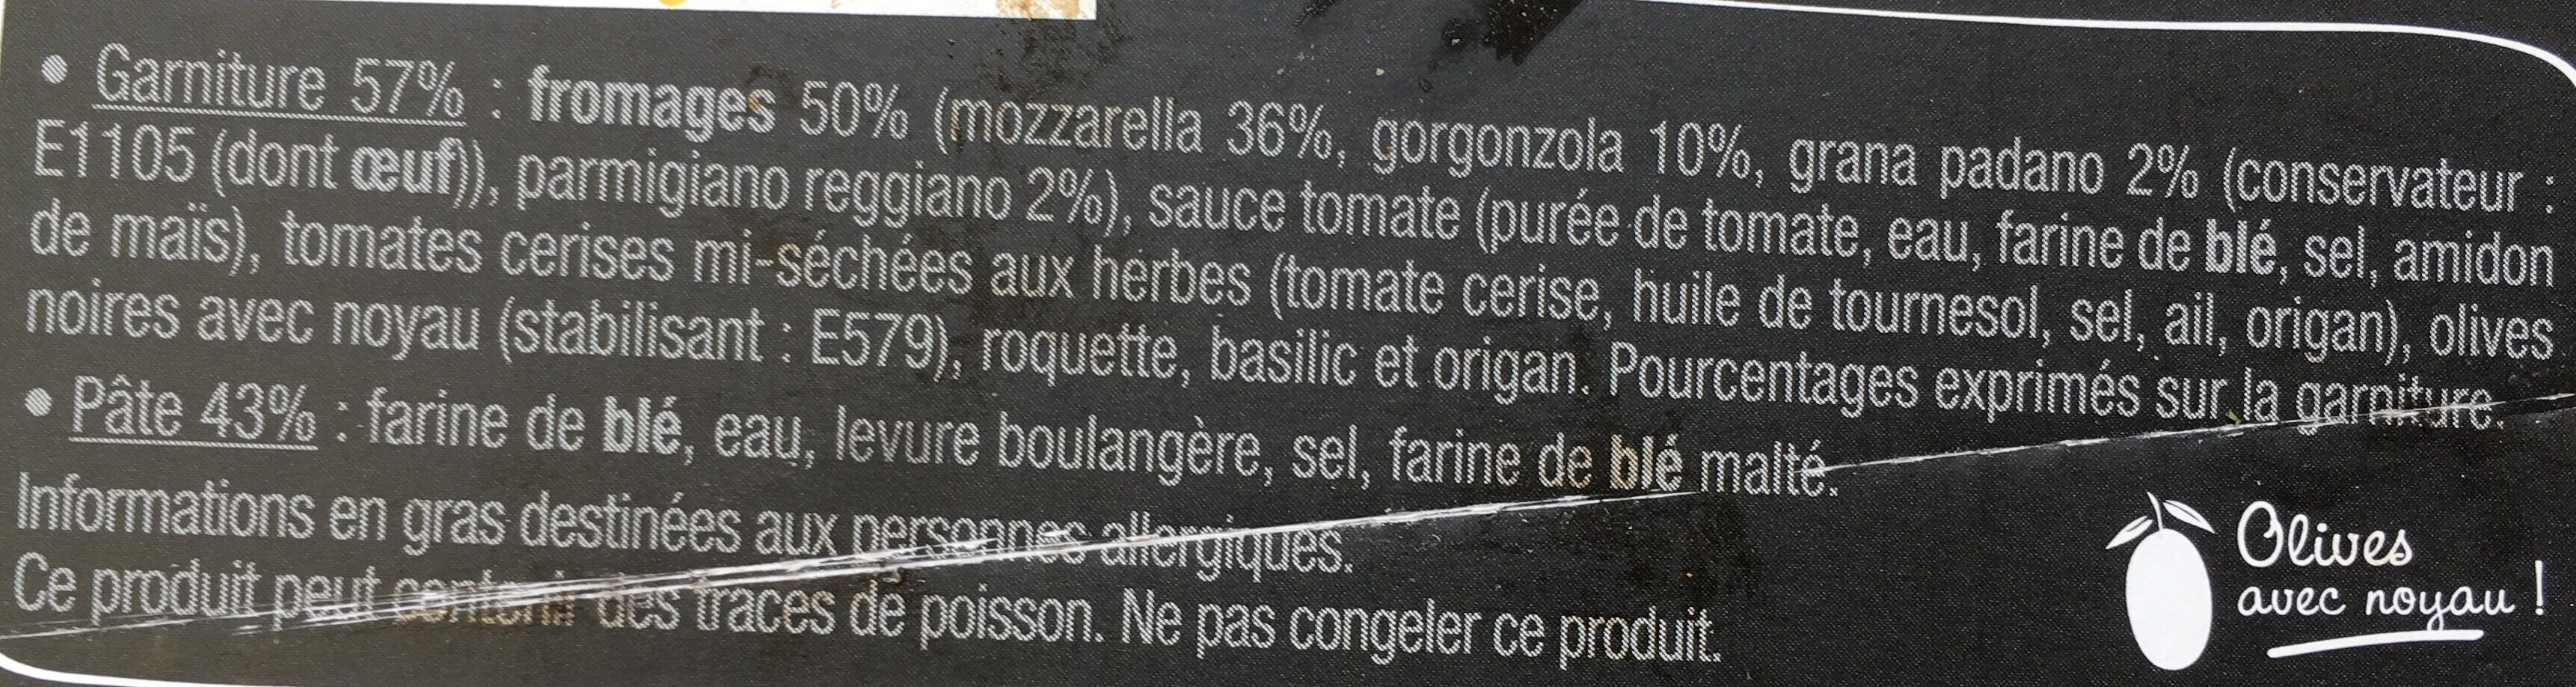 Pizza 4 fromaggi - Ingredients